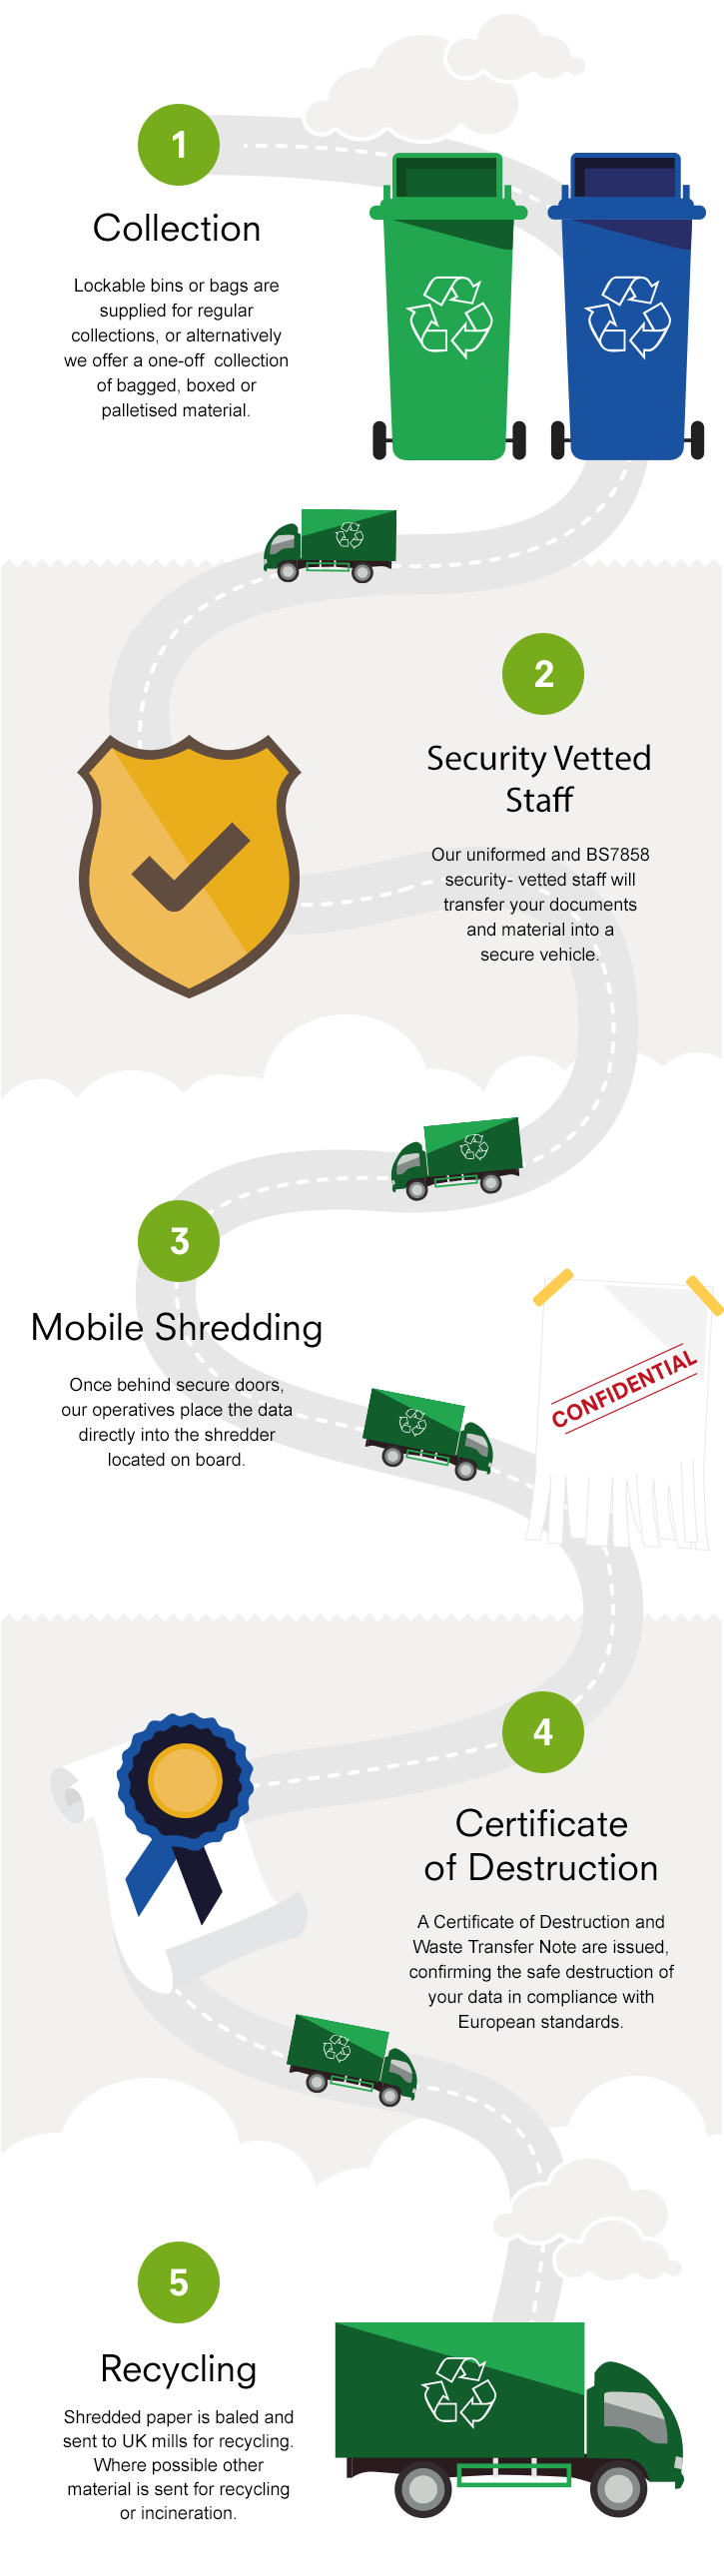 Mobile Shredding Infographic